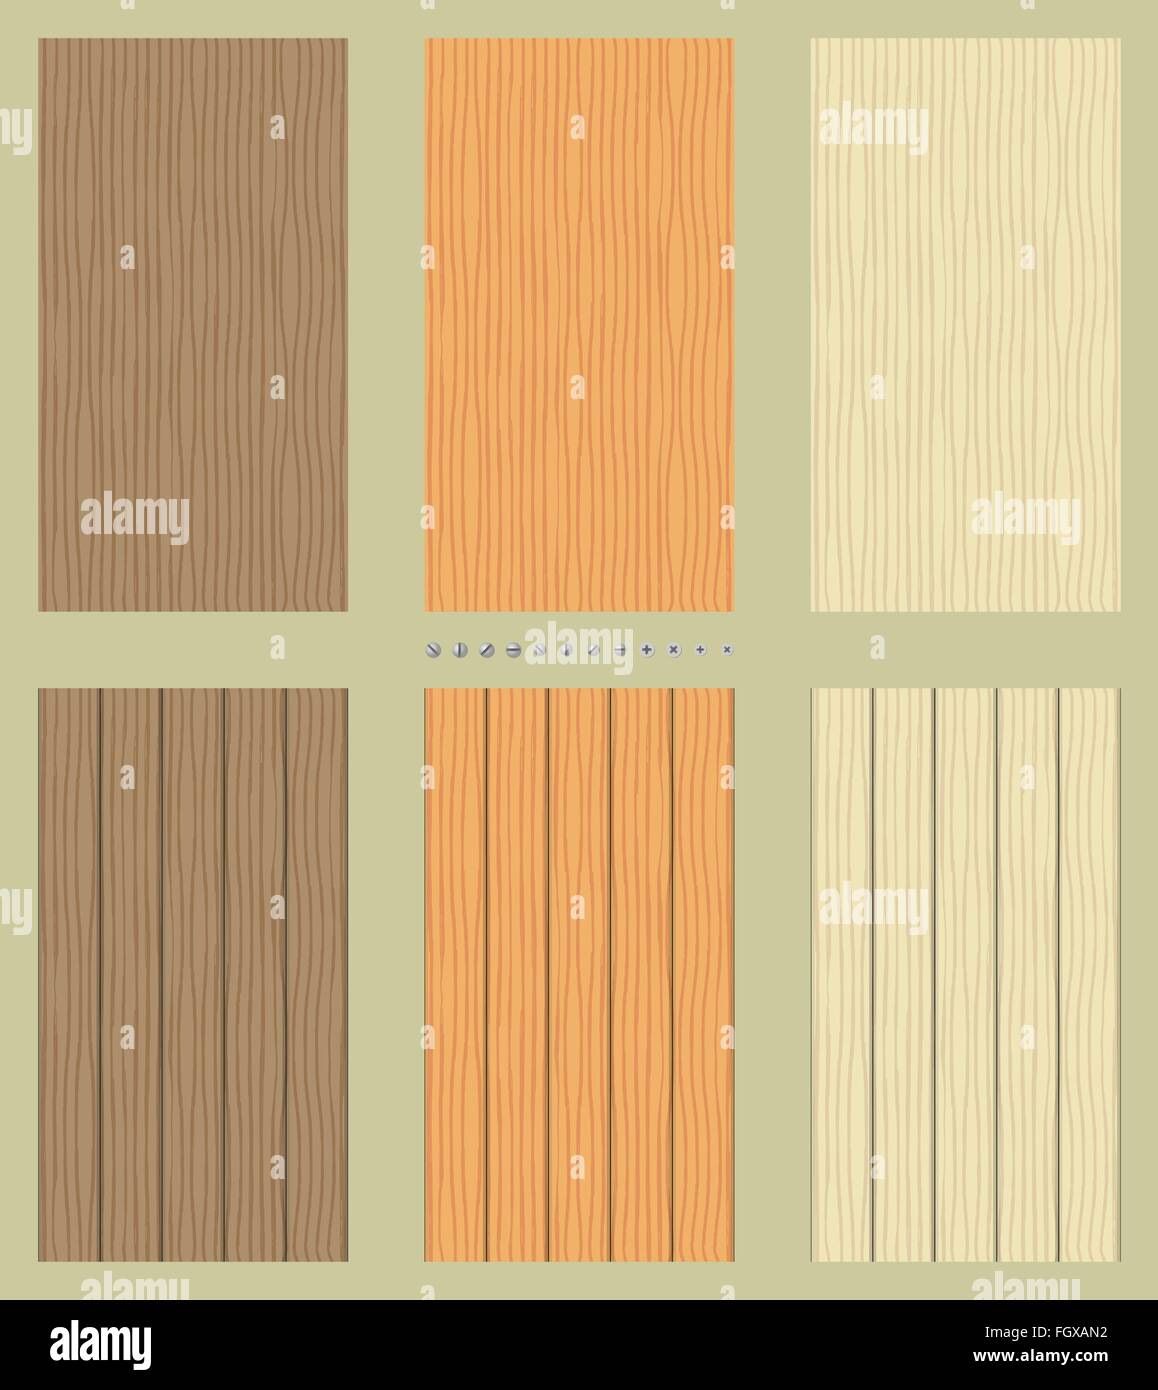 Seamless wooden backgrounds - Stock Image